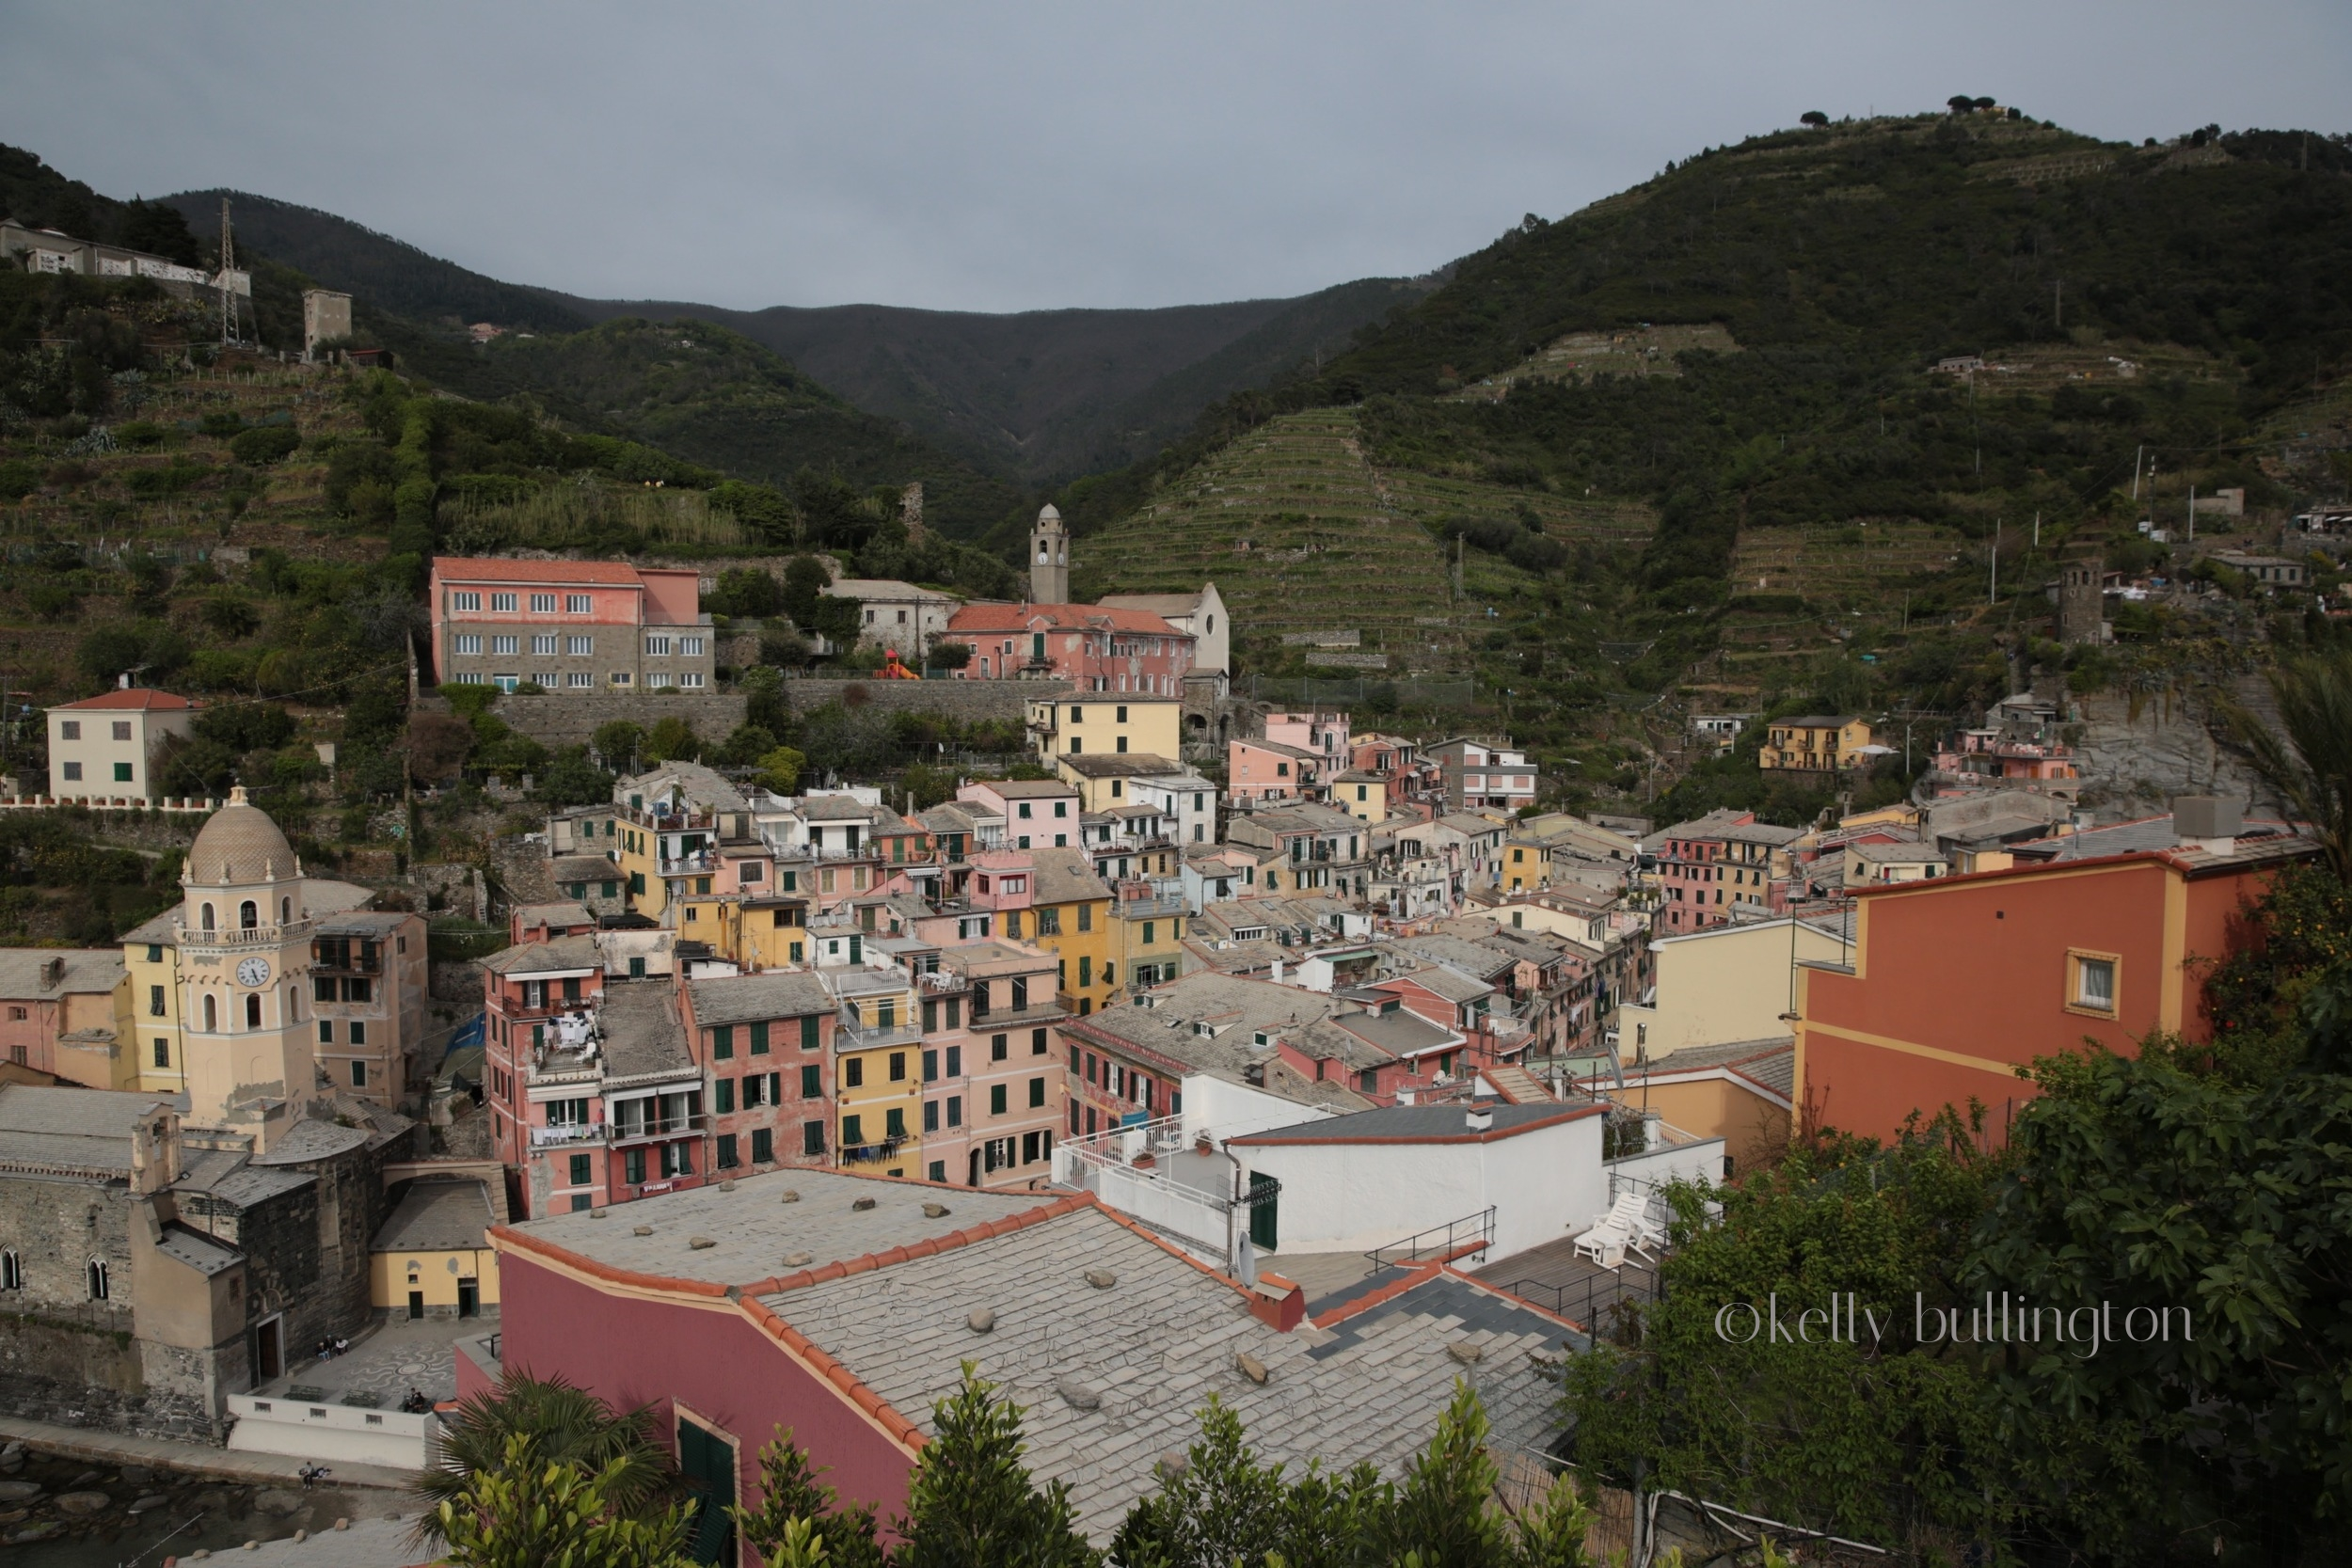 vernazza-travel-photography-kelly-bullington